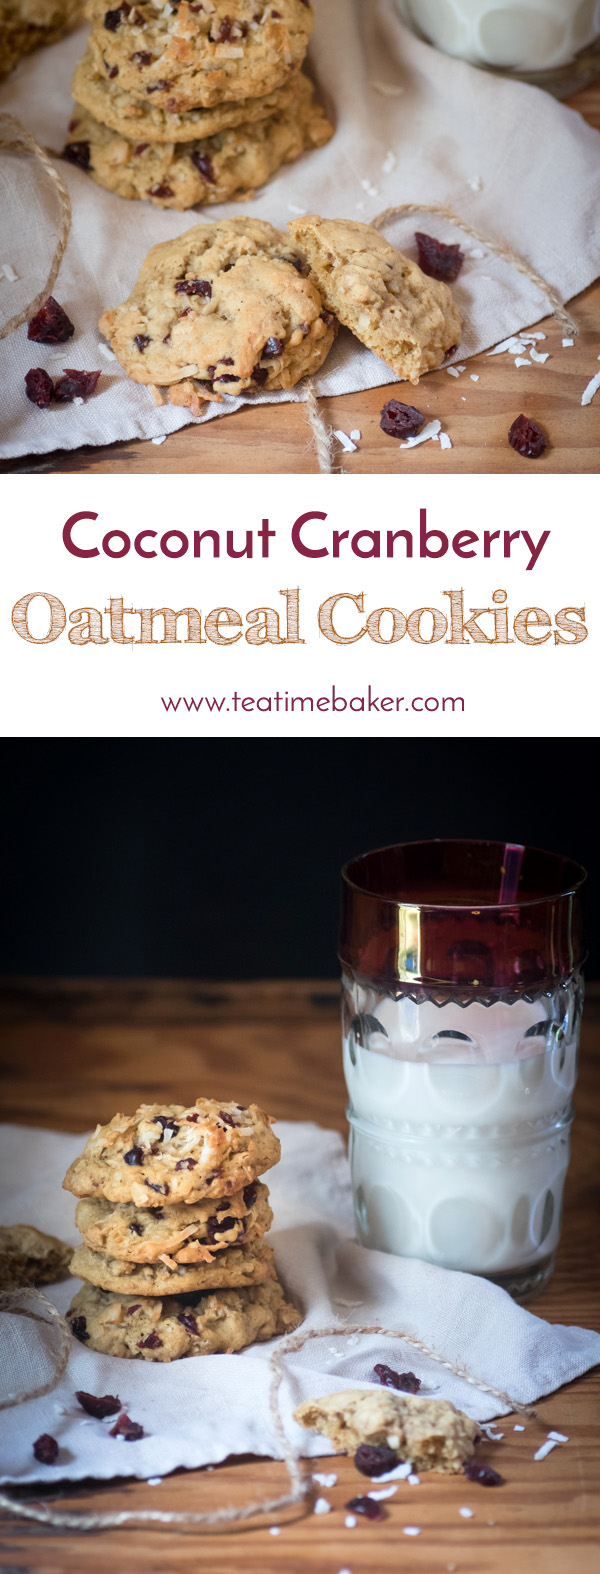 Coconut Cranberry Oatmeal Cookies